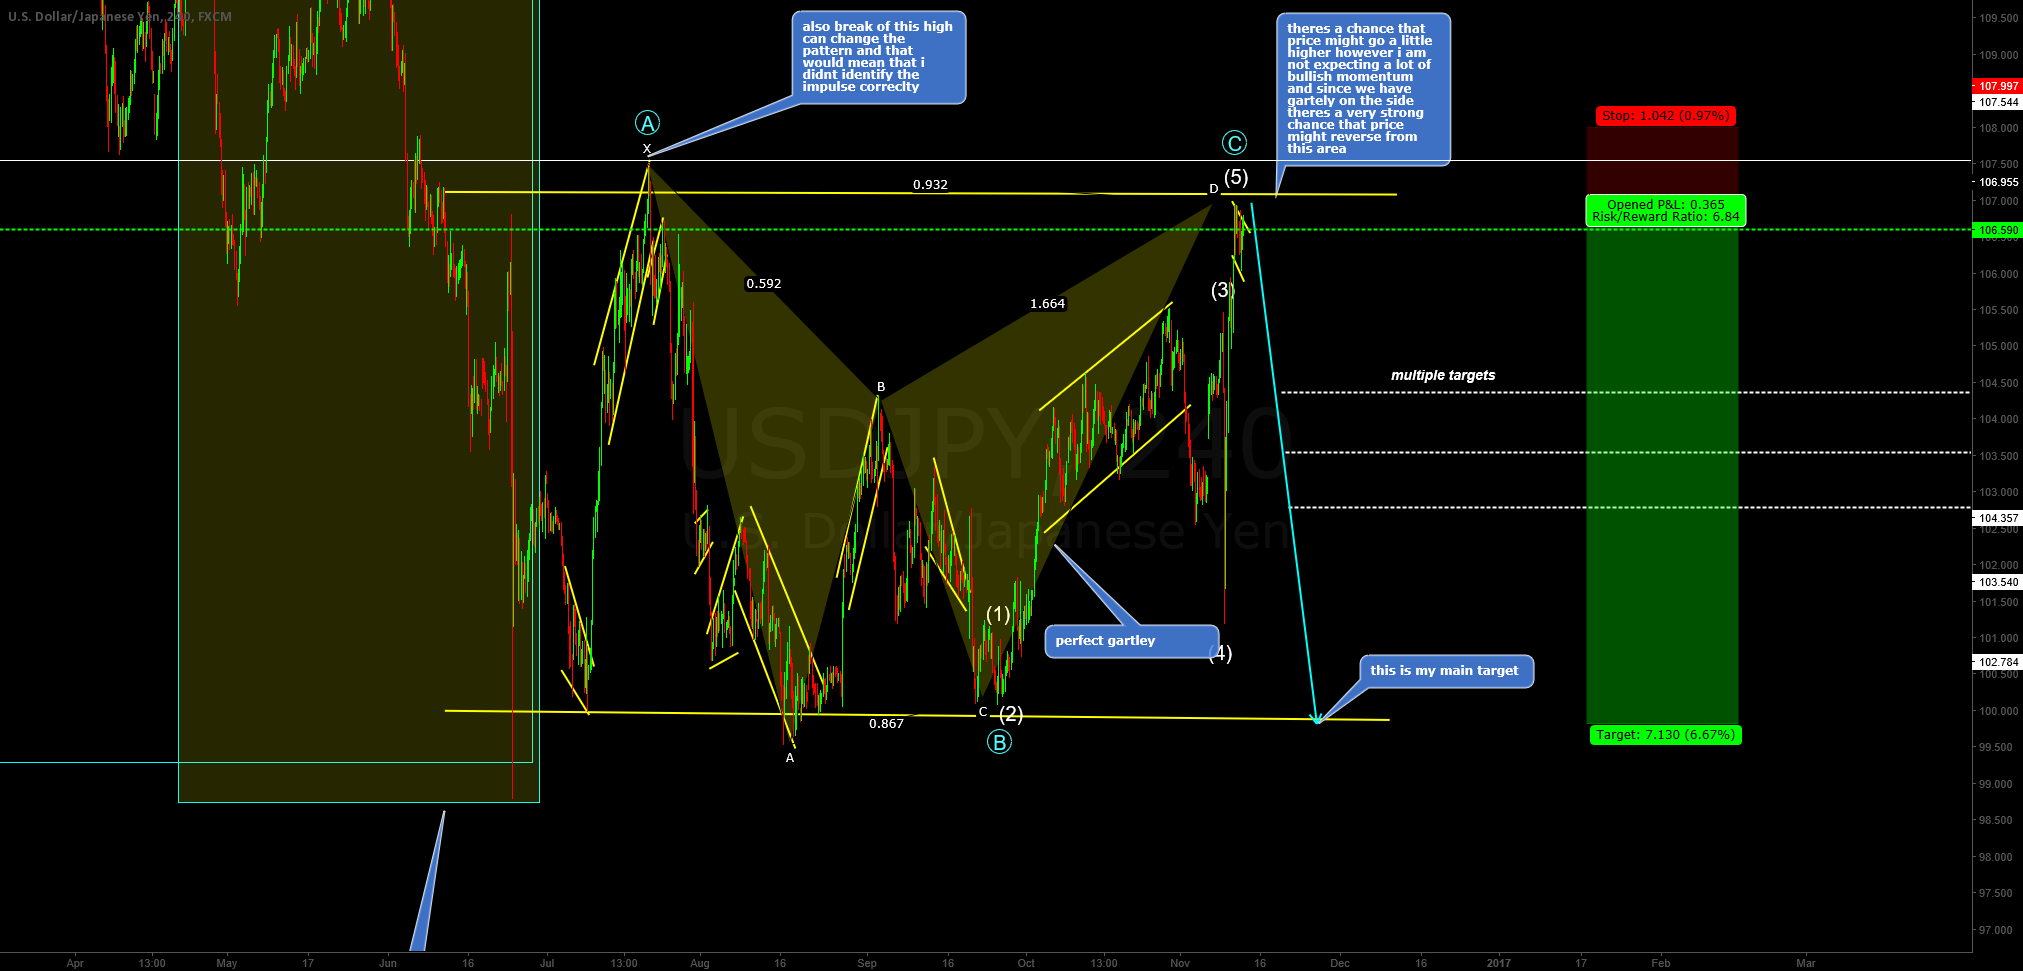 USDJPY FLAT ABC WITH PERFECT GARTLEY